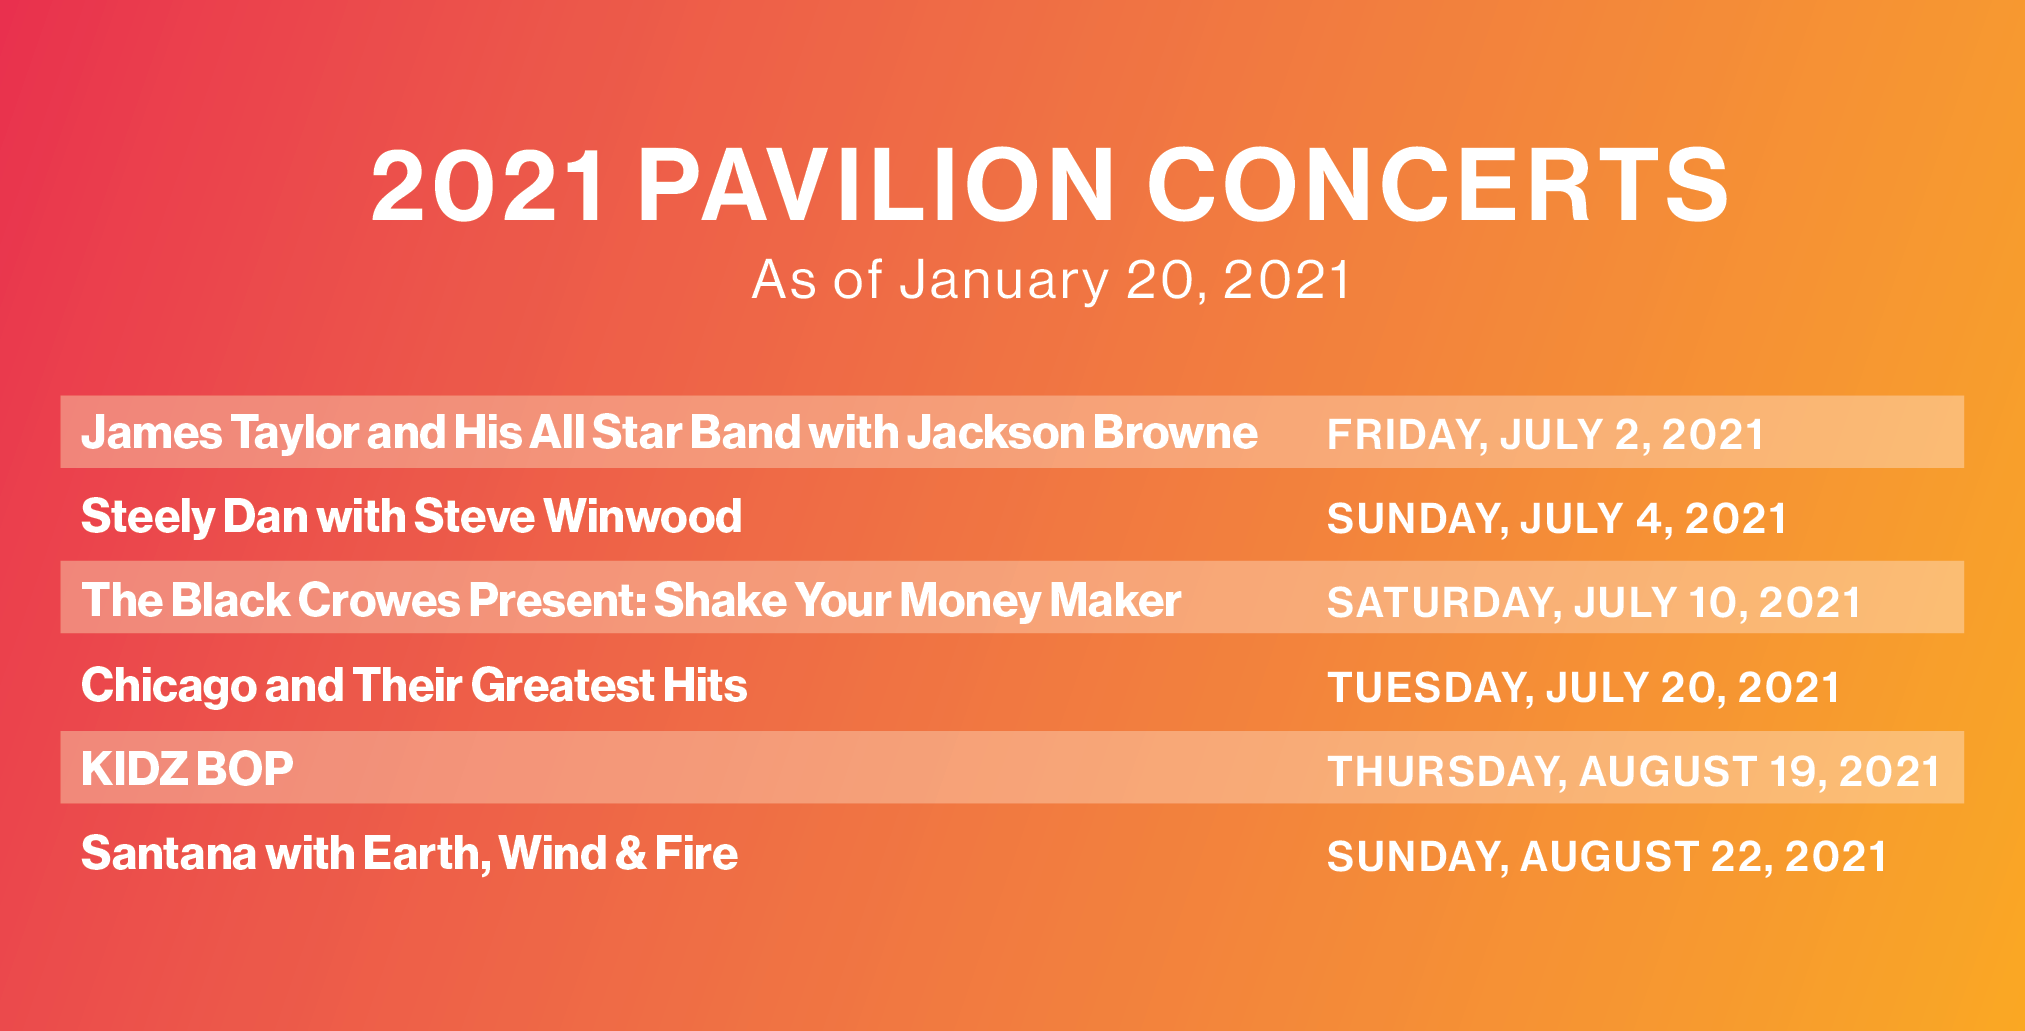 2021 pavilion season for bethel woods center for the arts